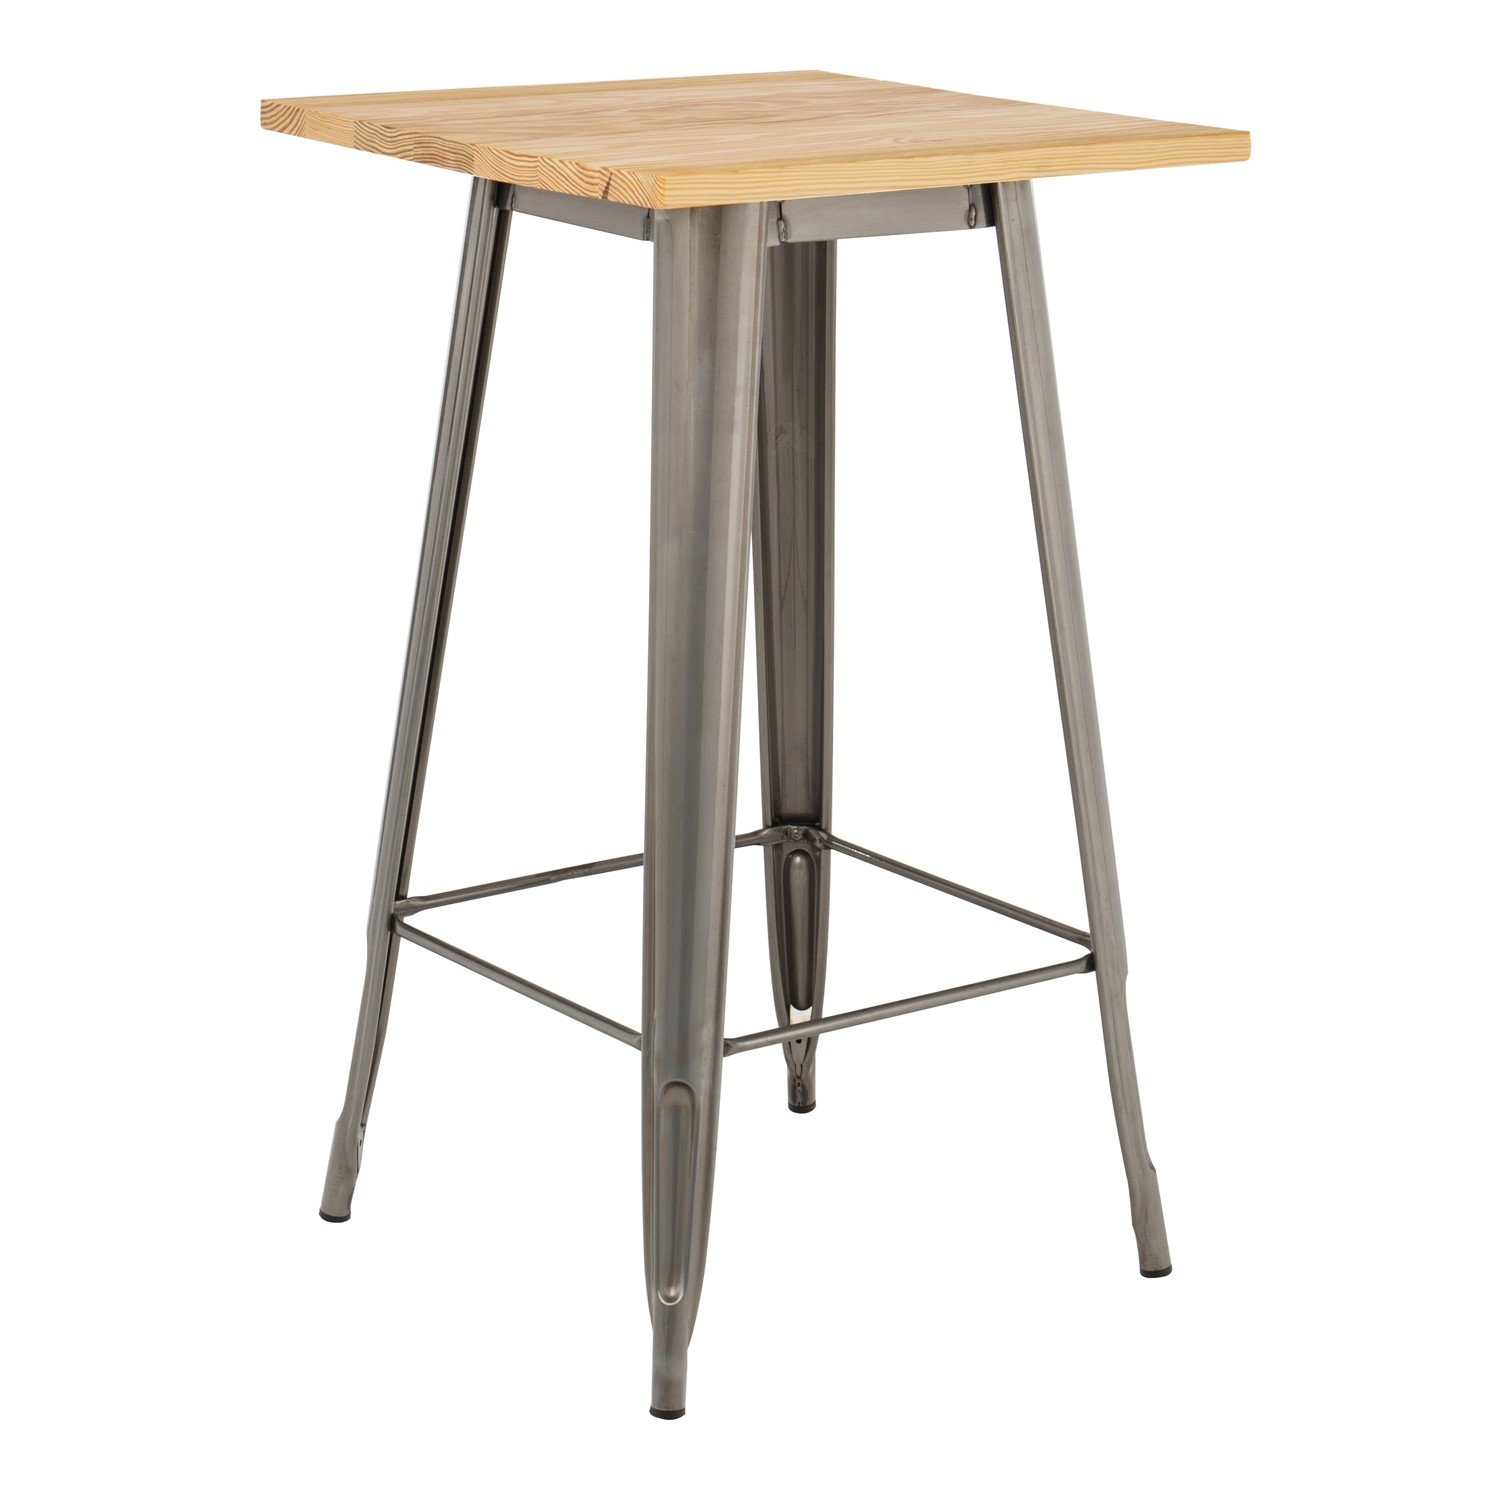 Brushed Wooden LIX High Table, gallery image 1